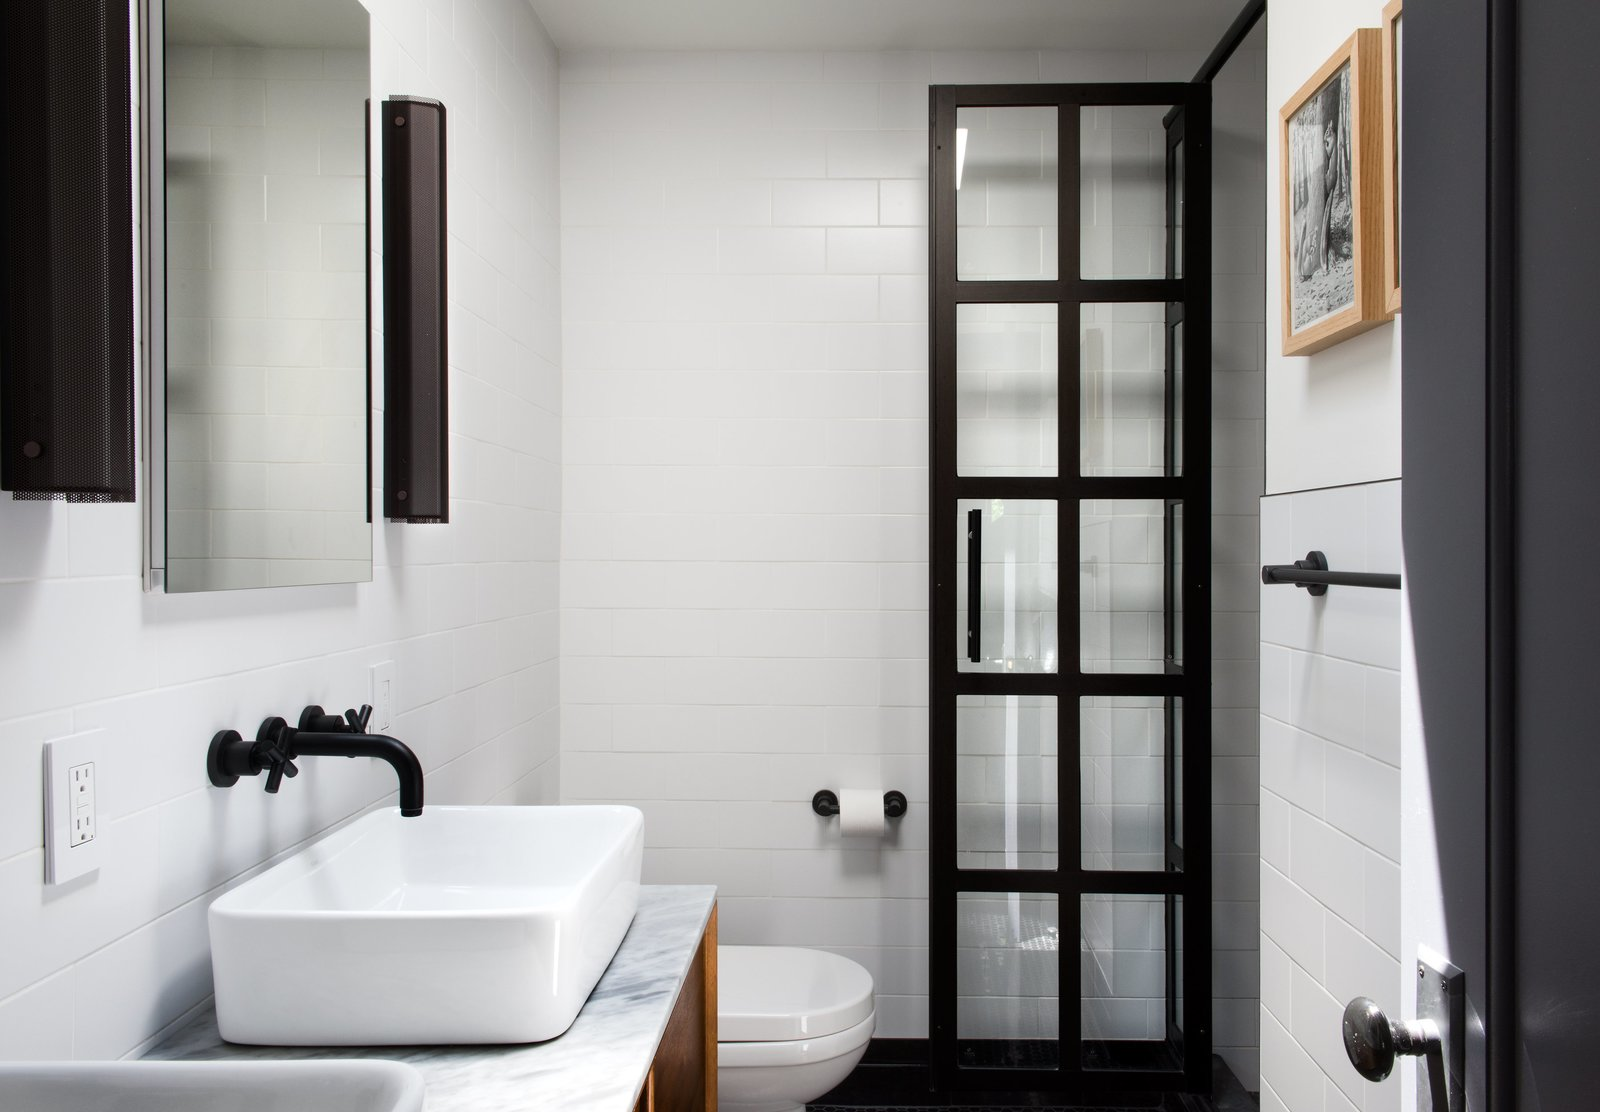 Bath Room, Marble Counter, Vessel Sink, and Subway Tile Wall An austere palette defines the master bathroom, with subway tiles from Classic Tile New York, matte-black fixtures by California Faucets, and black perforated-aluminum Branch sconces by RBW.  Bathroom from Modern Becomes Eclectic in This Renovated Brooklyn Townhouse